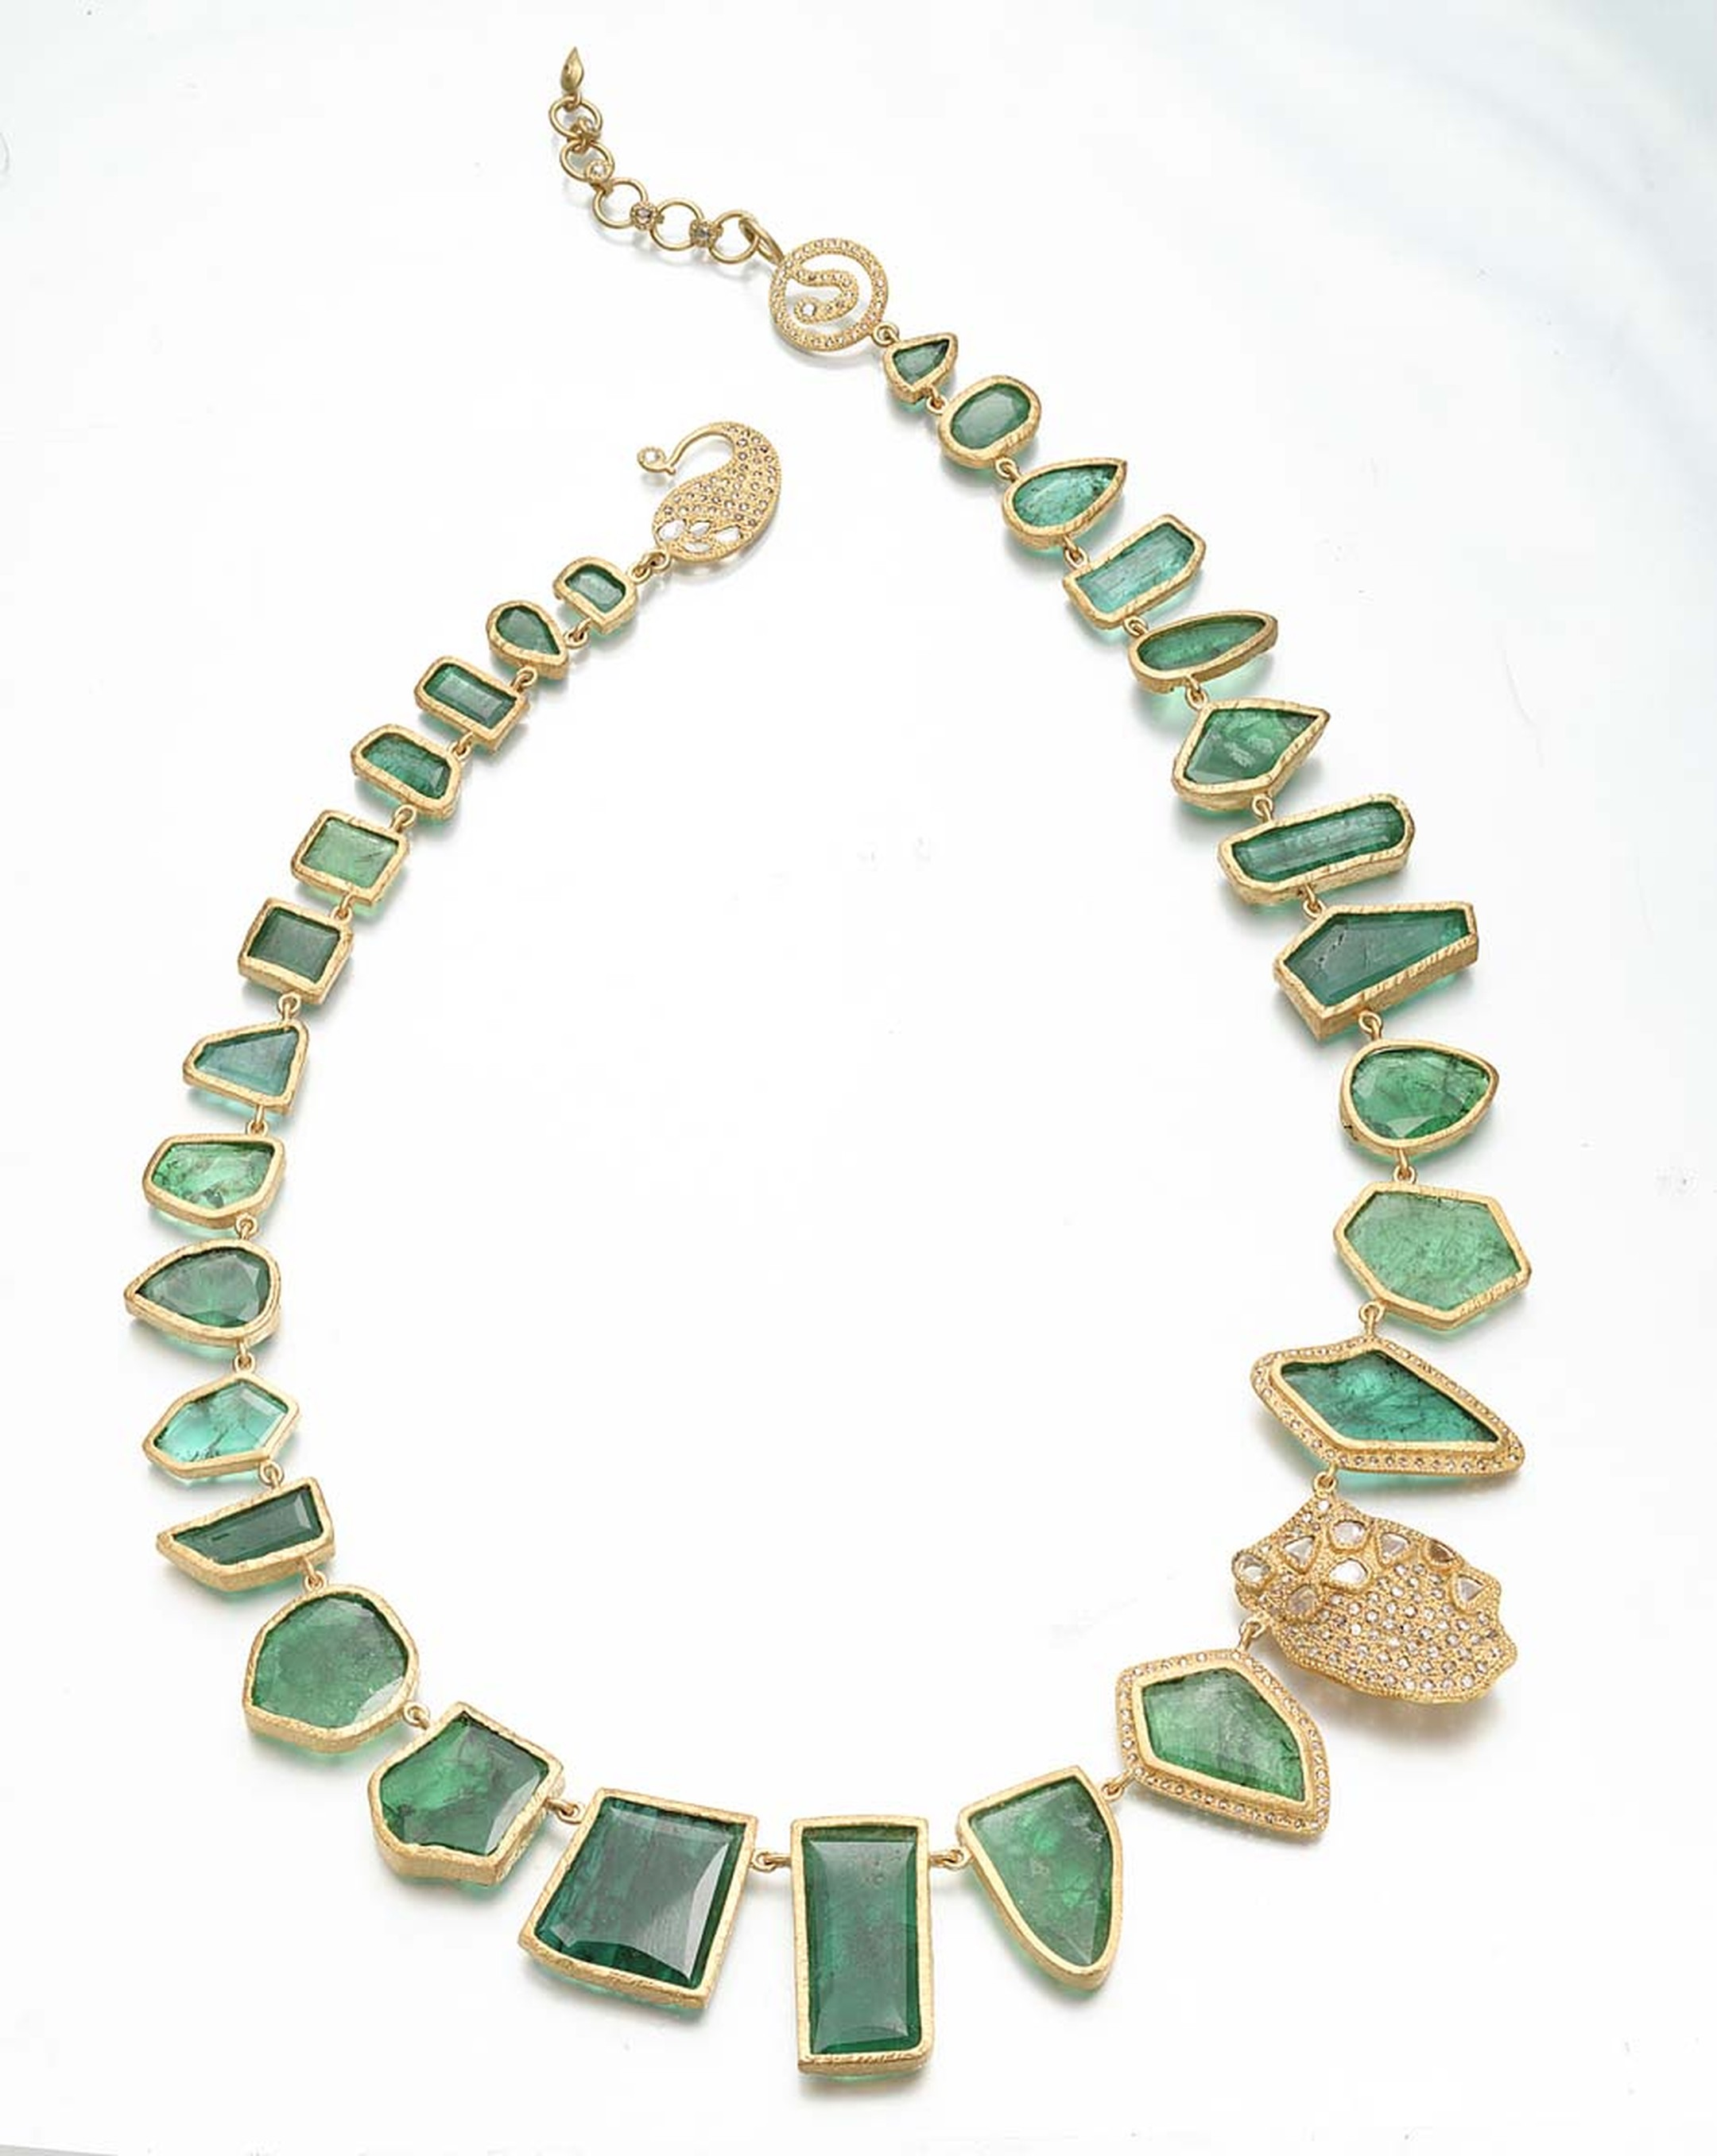 Coomi Antiquity necklace in gold with emerald slices and diamonds.